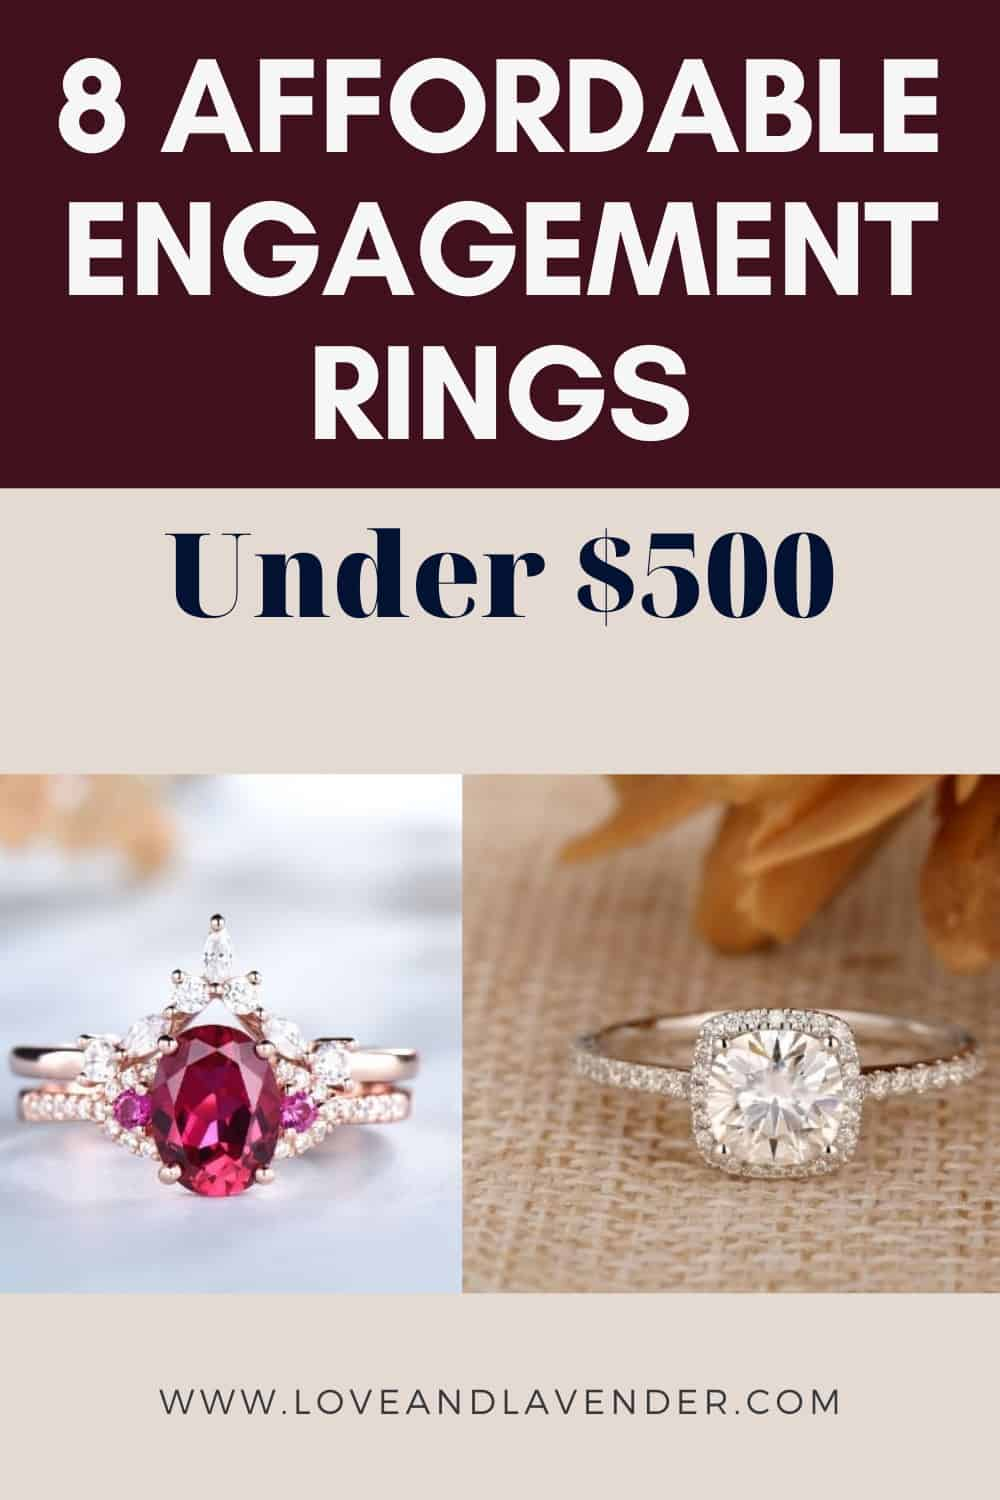 Pinterest Pin - Affordable Engagement Rings